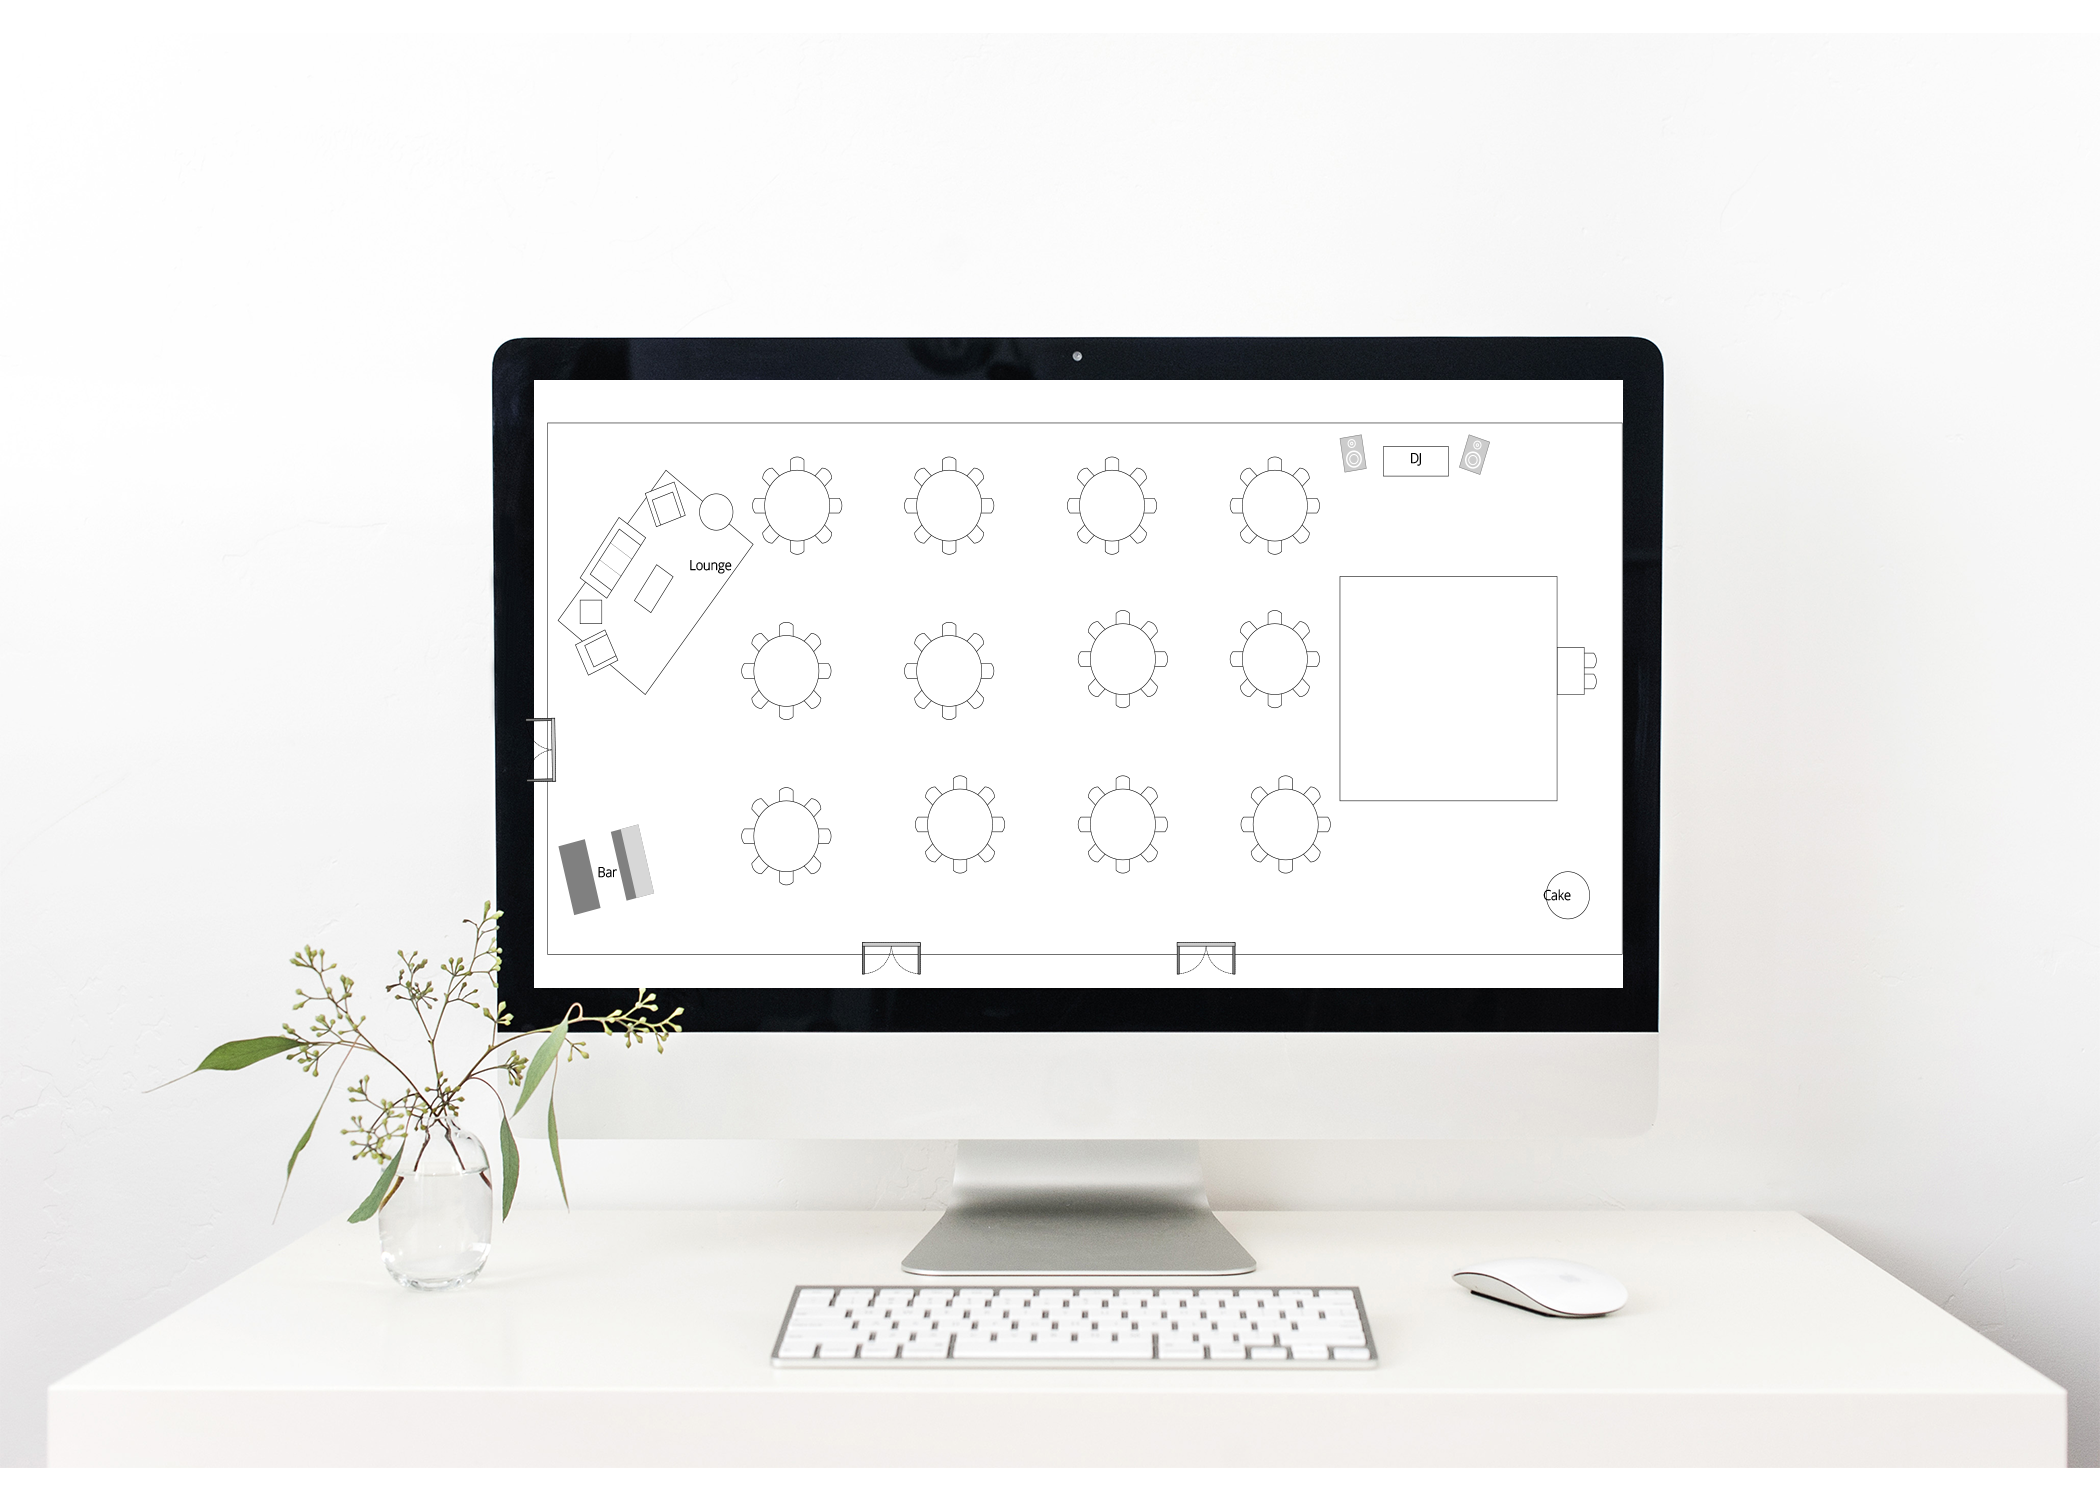 Planning tools - As our client you will enjoy 24/7 access to your personalized planning dashboard where we collaborate with you on your comprehensive planning checklist, design gallery, vendor selection process, timeline, layout tools, budget & guest management tools to name a few!